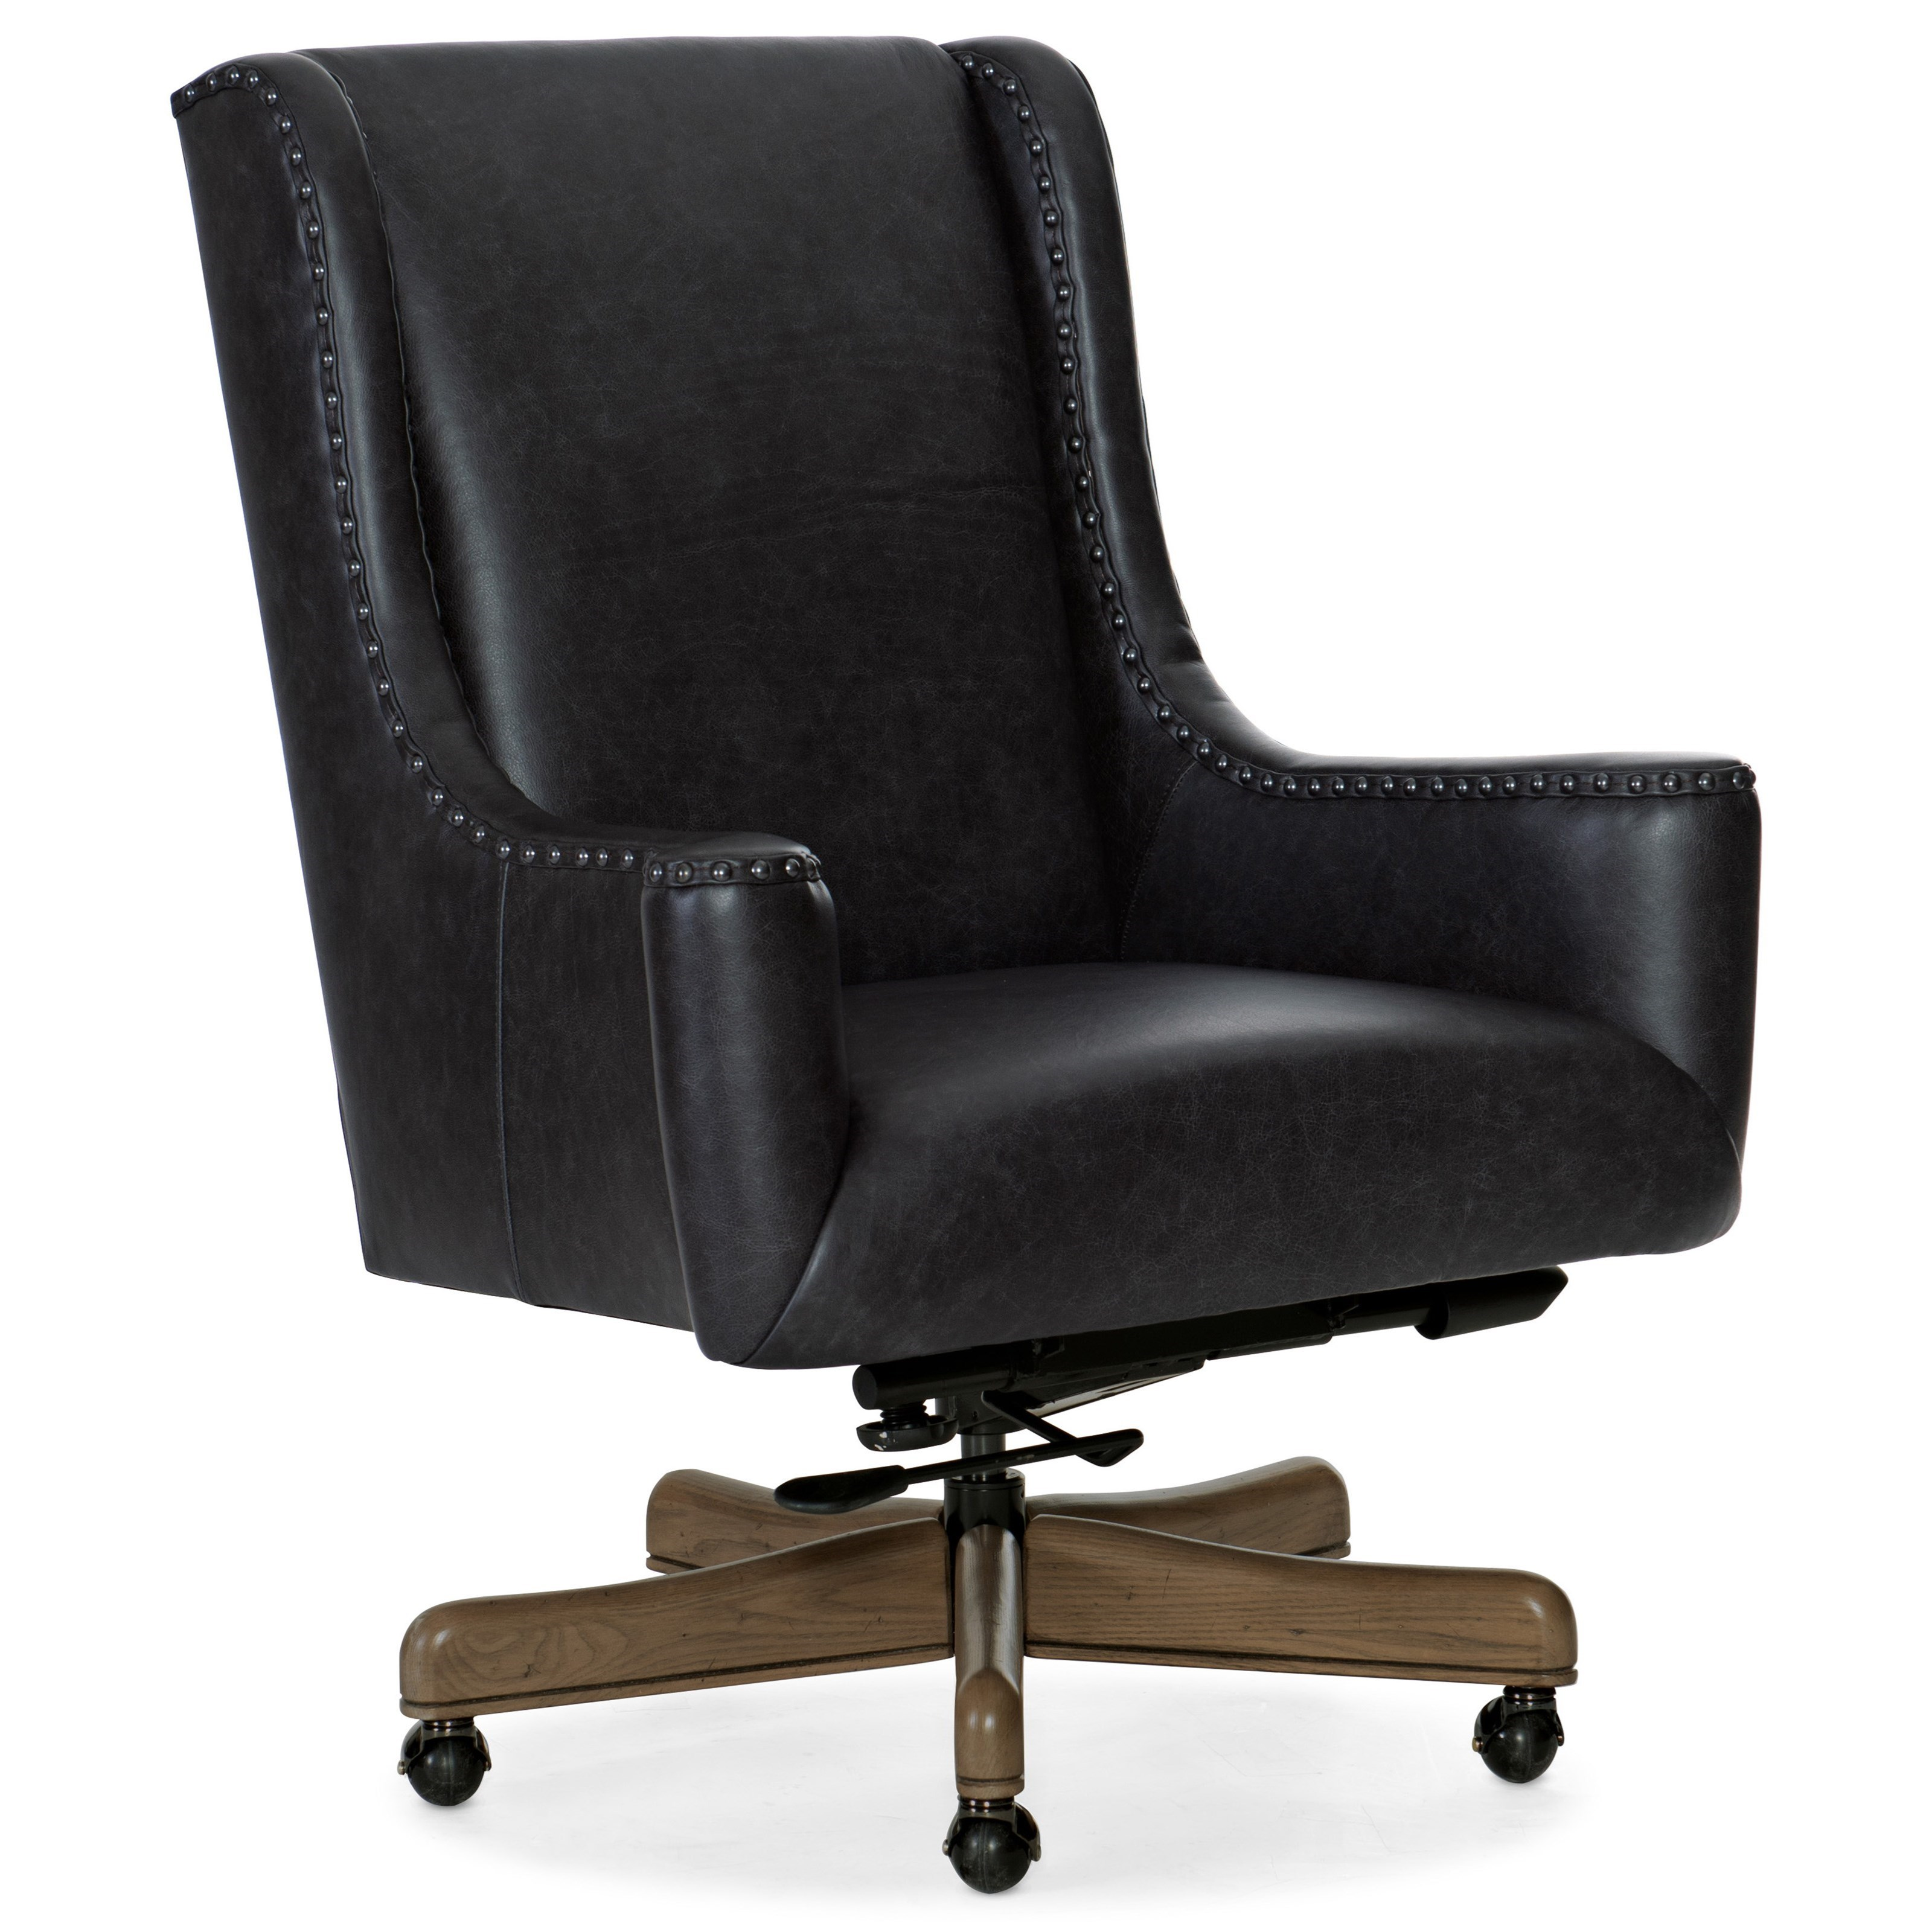 Executive Seating Lily Executive Swivel Tilt Chair by Hooker Furniture at Powell's Furniture and Mattress